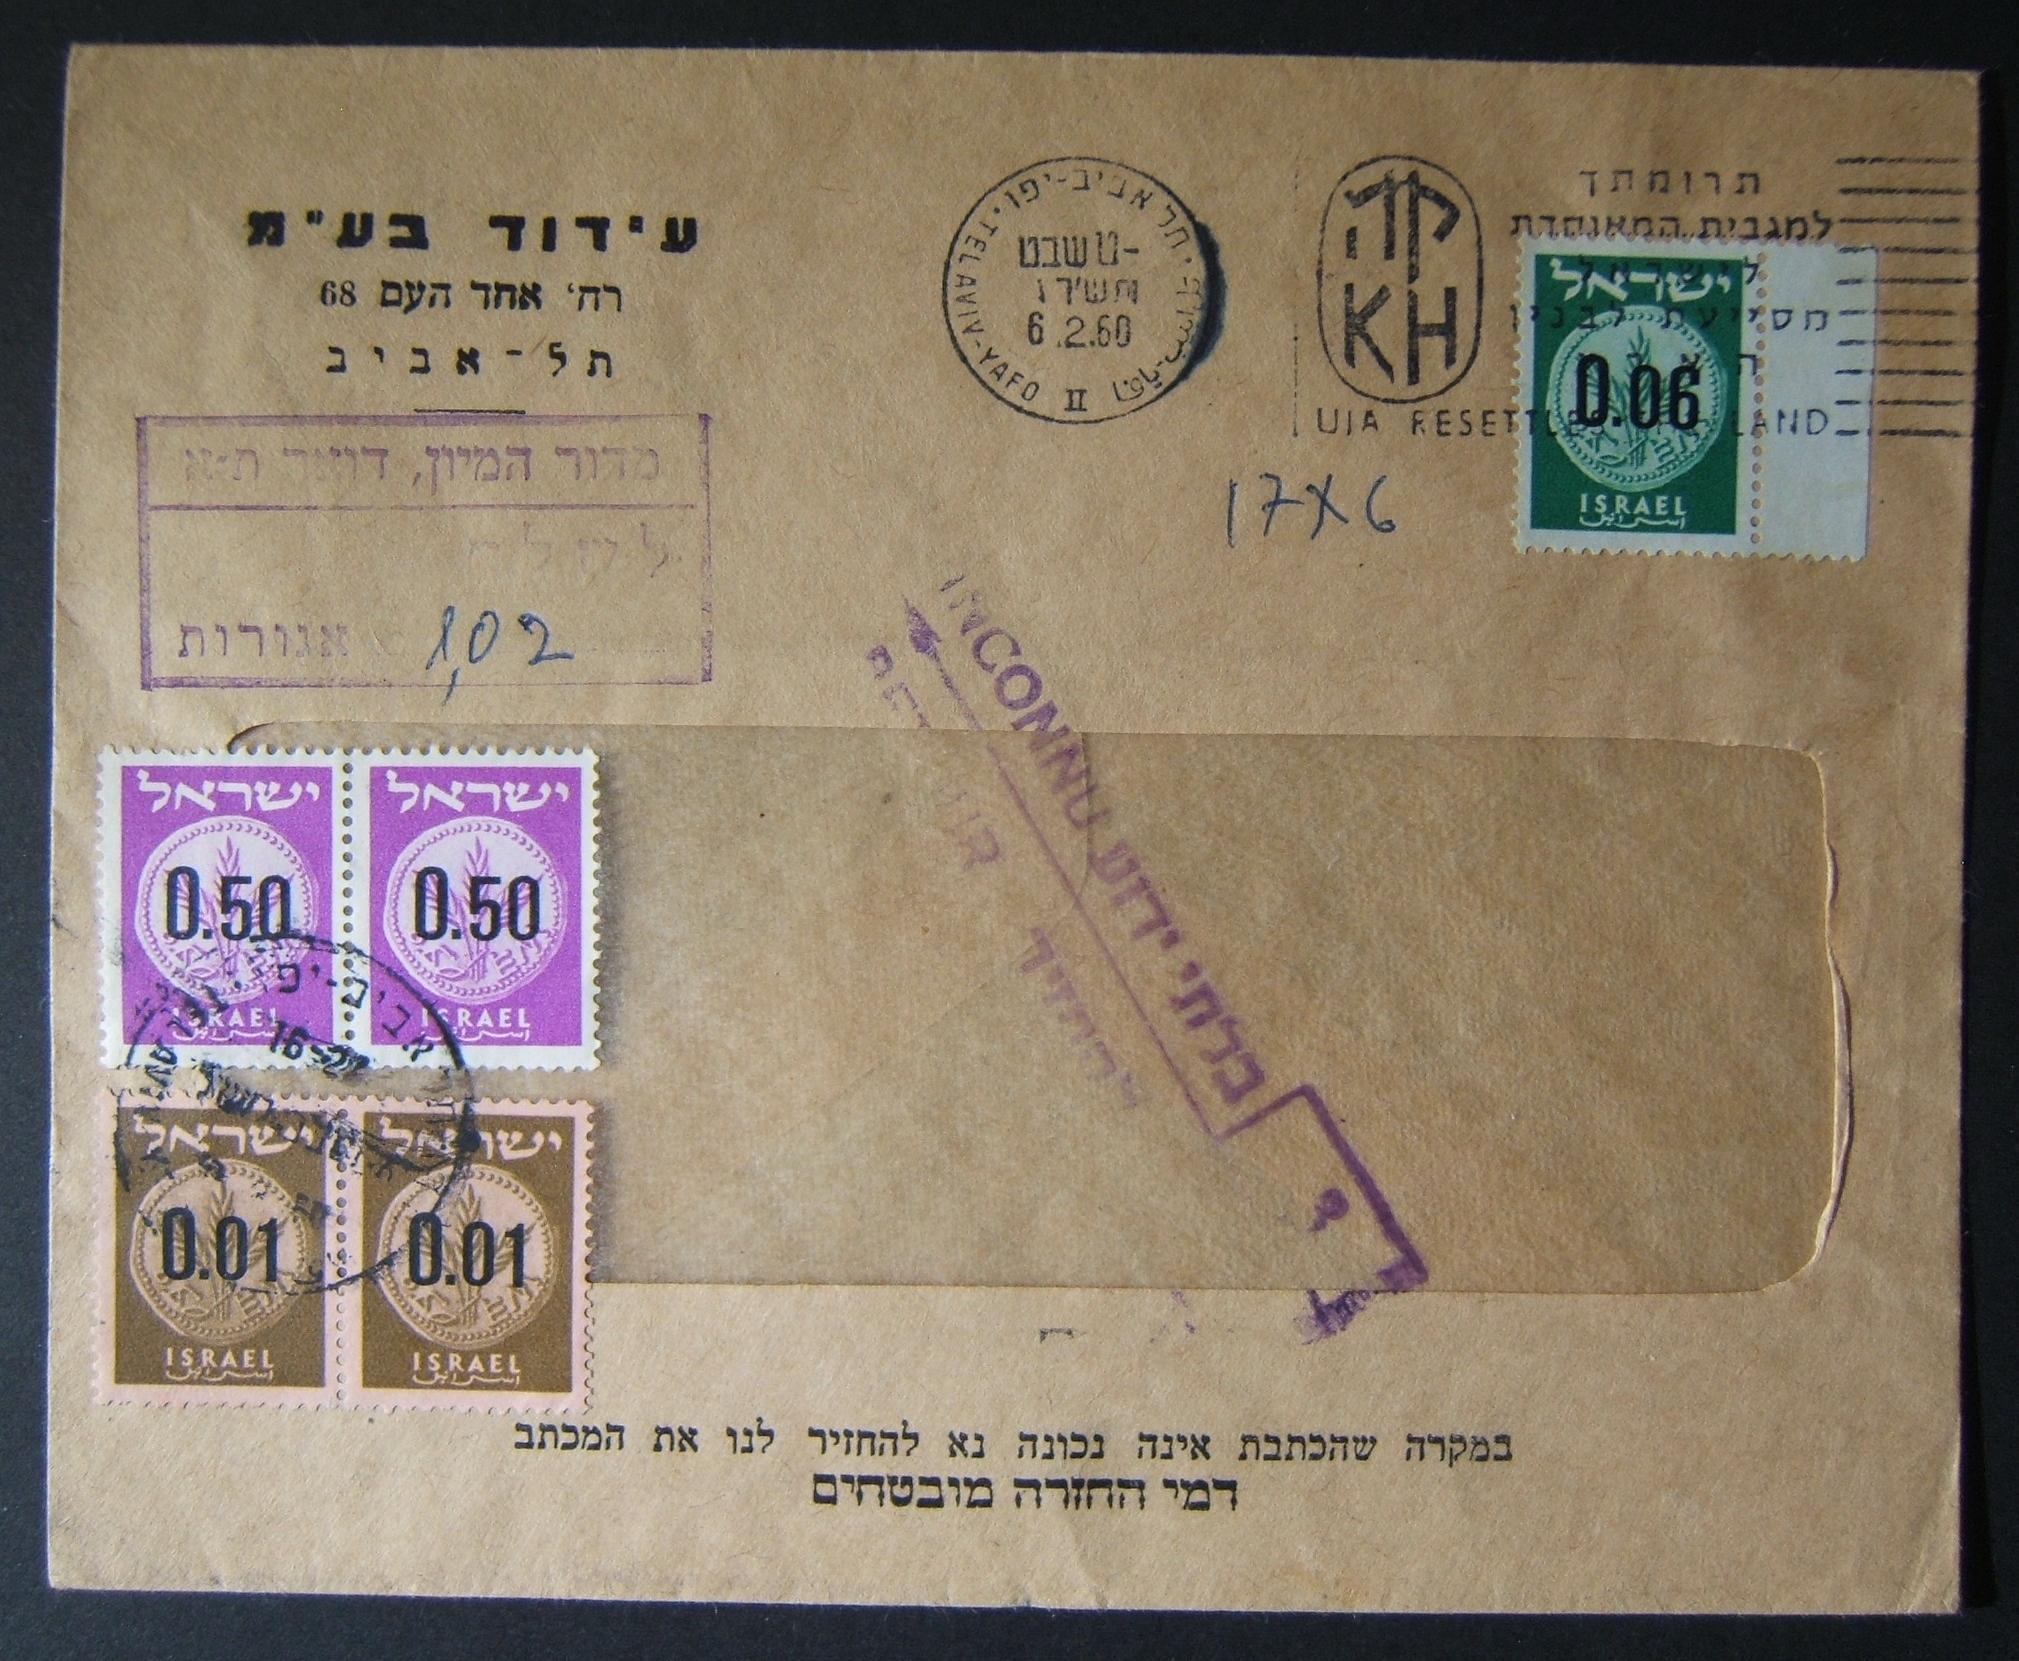 1960 domestic 'top of the pile' taxed franking: 6-2-60 printed matter commercial cover ex TLV branch of Idud Ltd. franked 6 Ag at the DO-9 period PM rate using 1960 Provisional Ba1